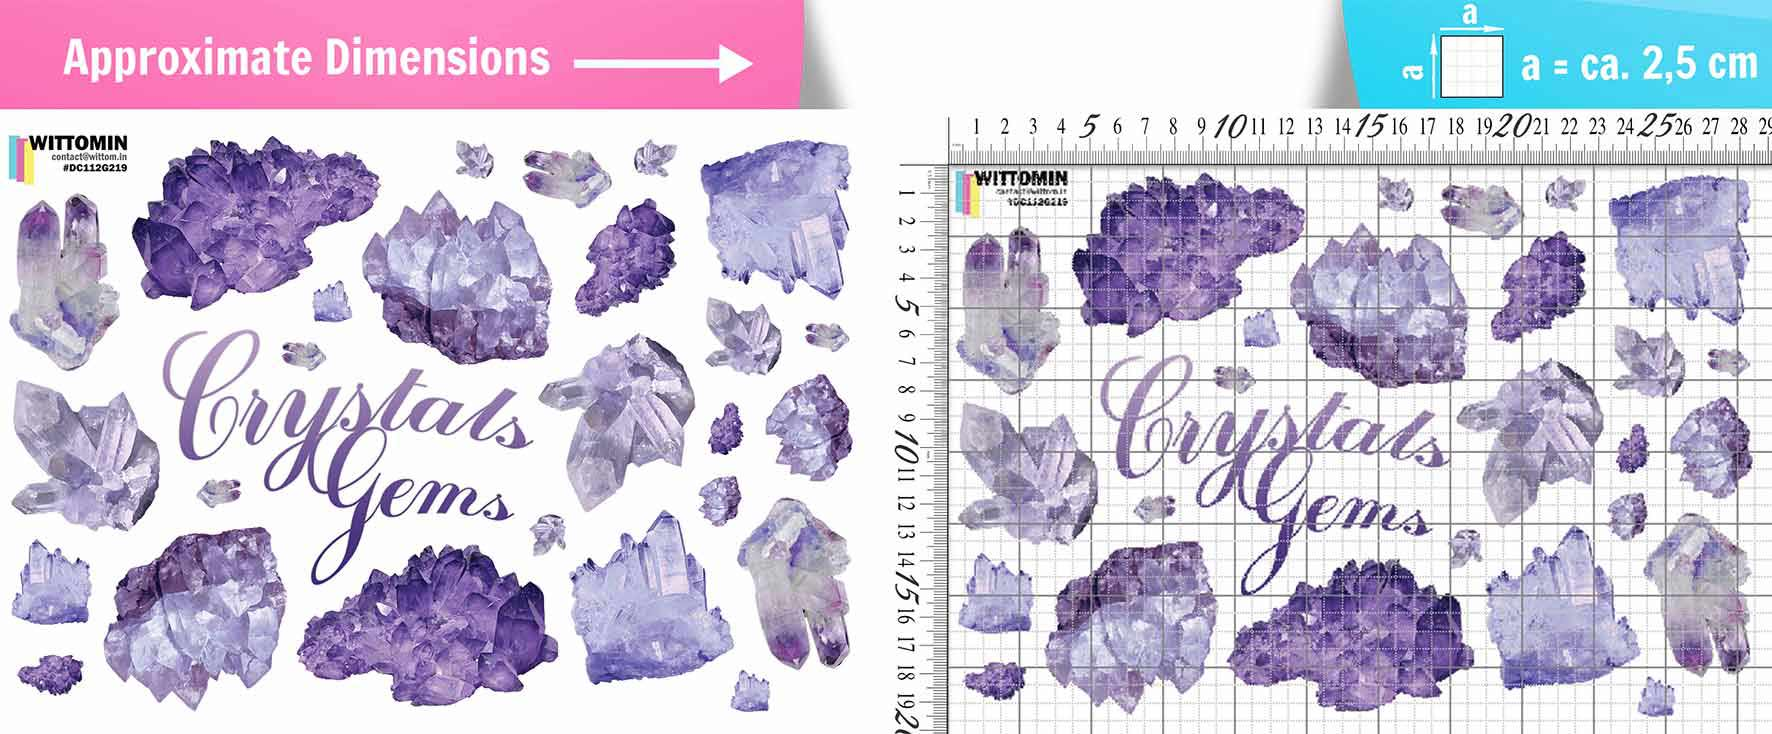 Crystals - Amethyst sticker set from Wittomin